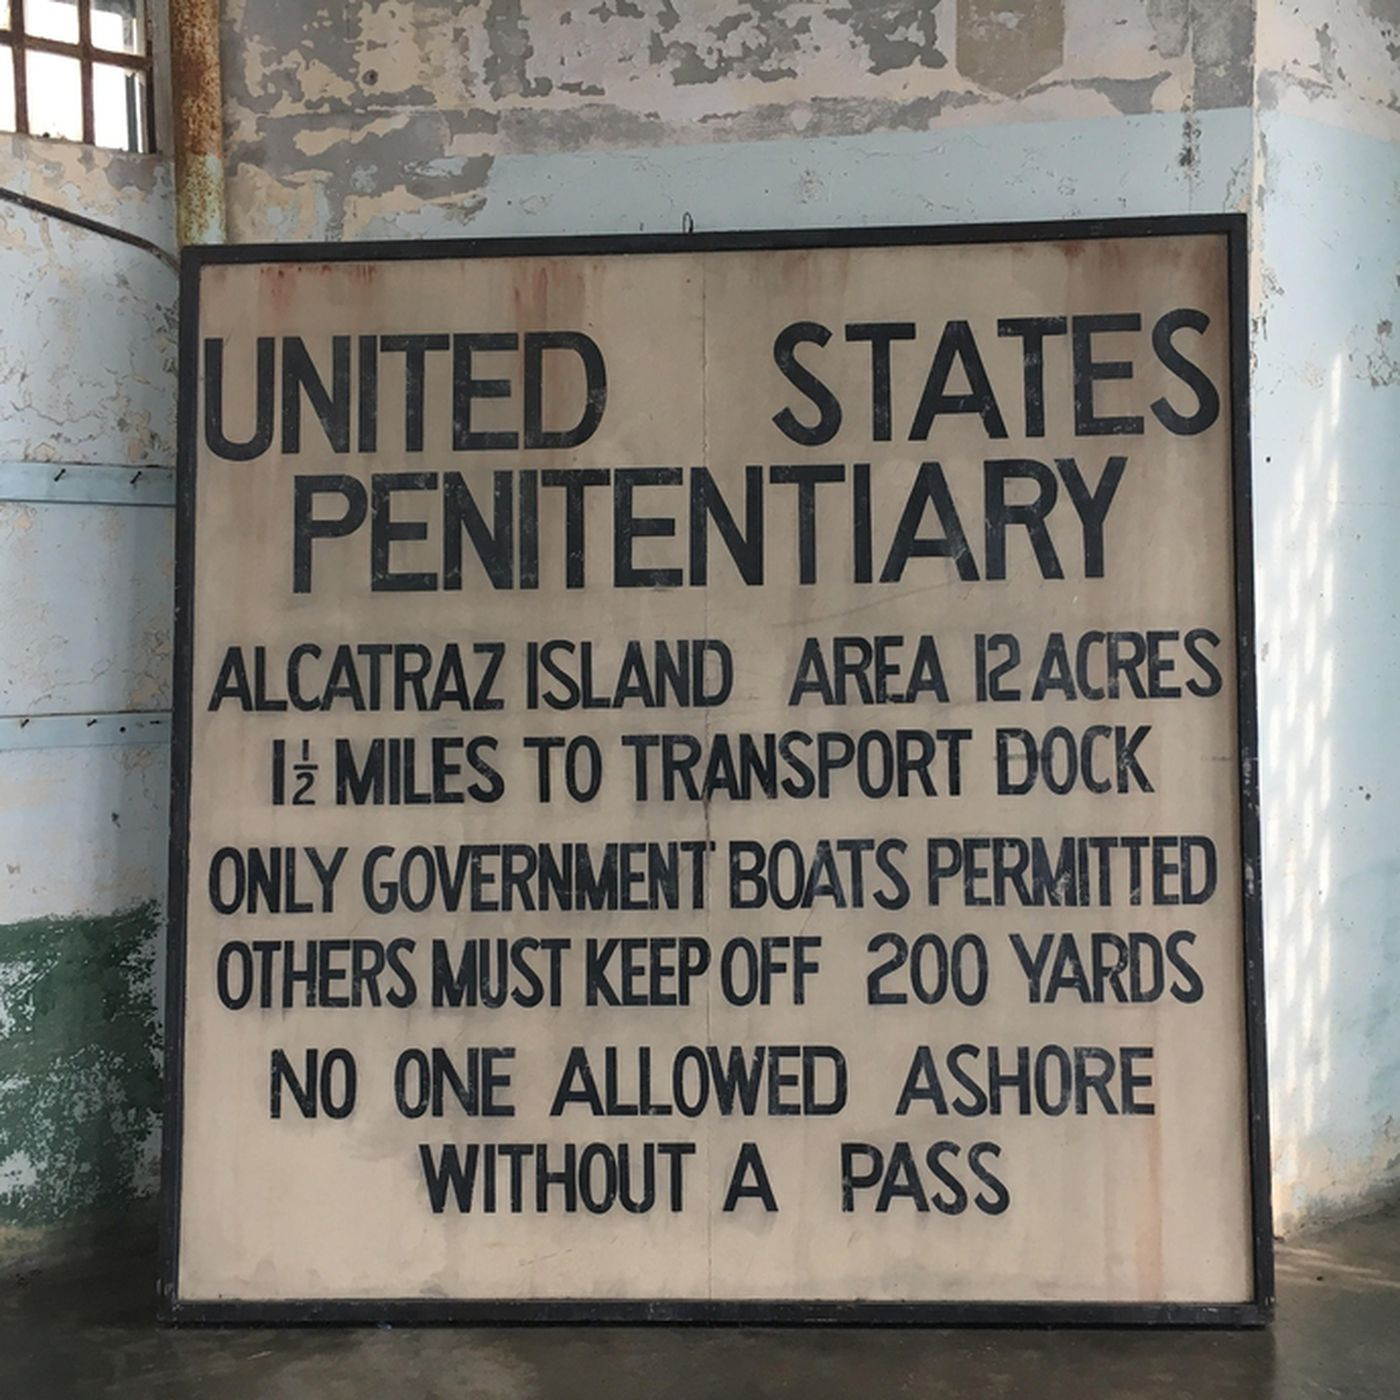 Alcatraz remains open during government shutdown - Curbed SF